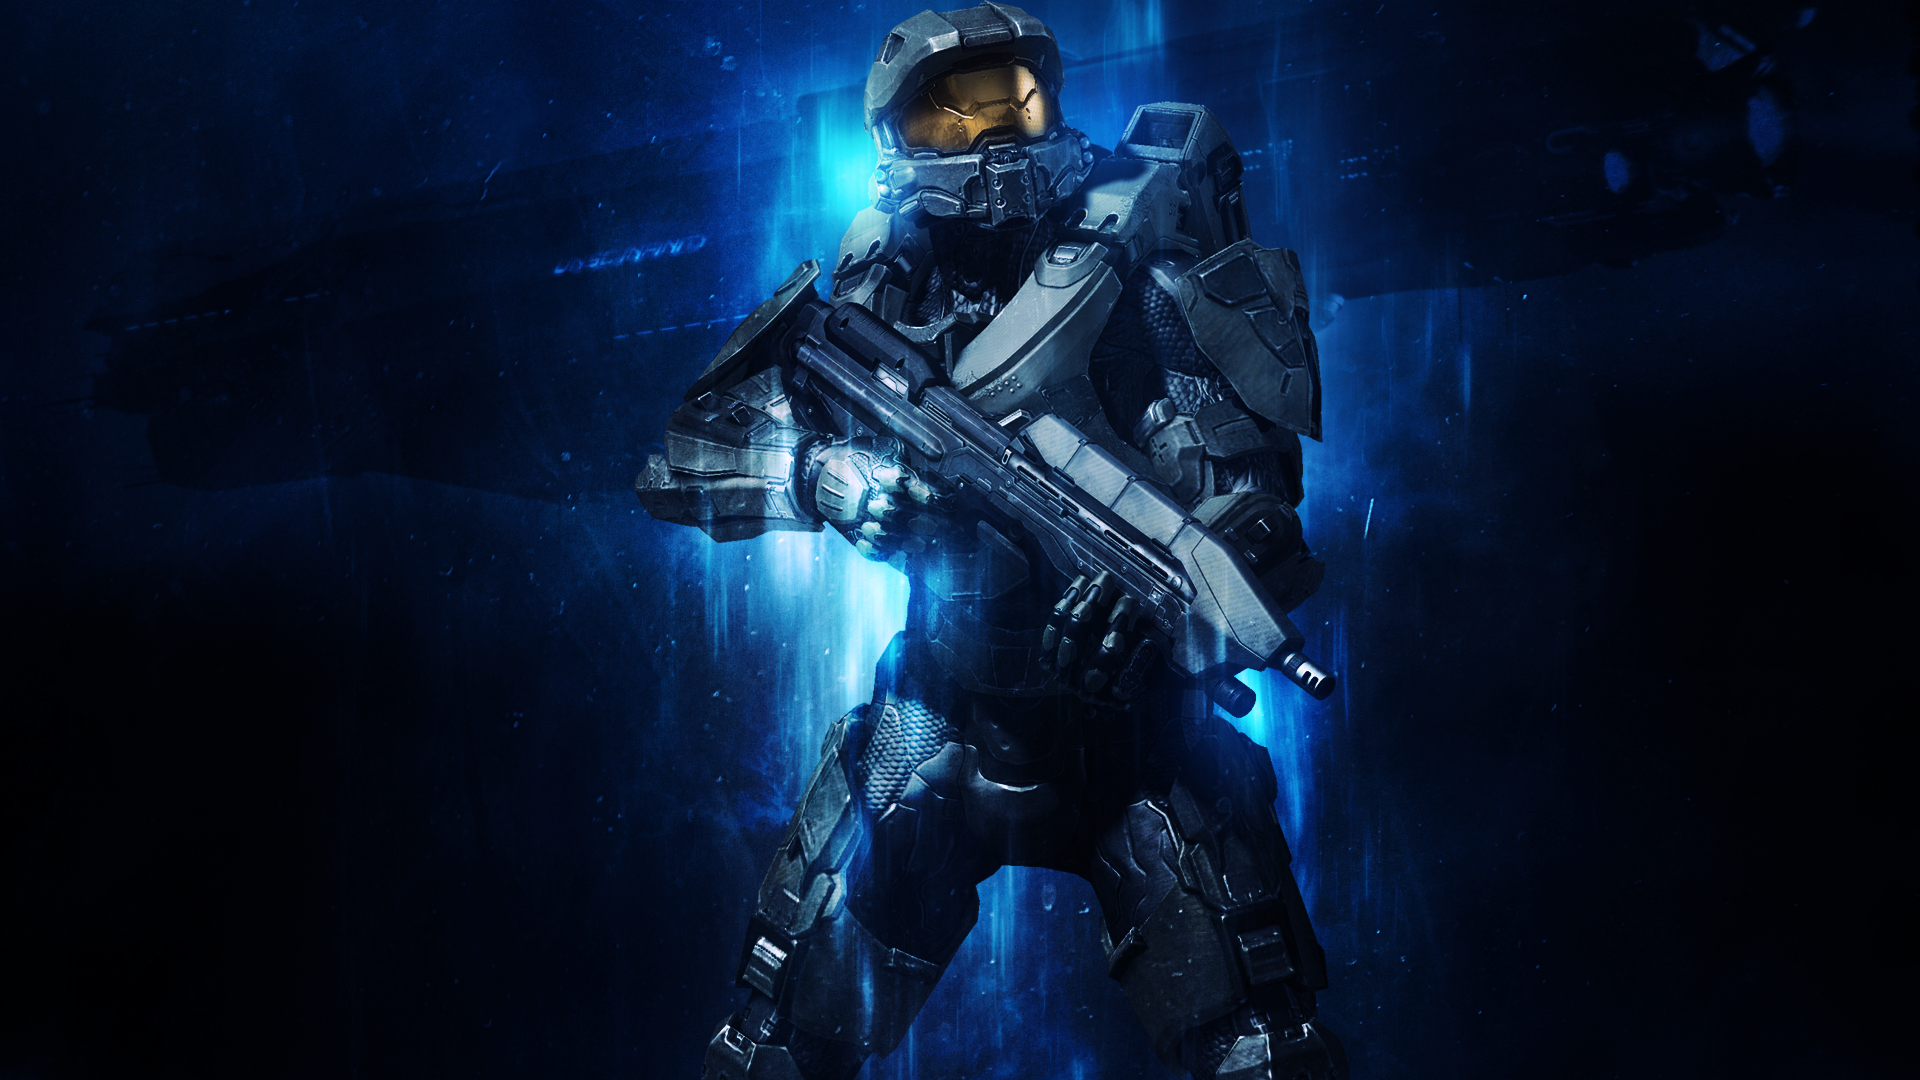 Halo-1920×1080-High-Definition-Daily-Screens-id-wallpaper-wp3806212